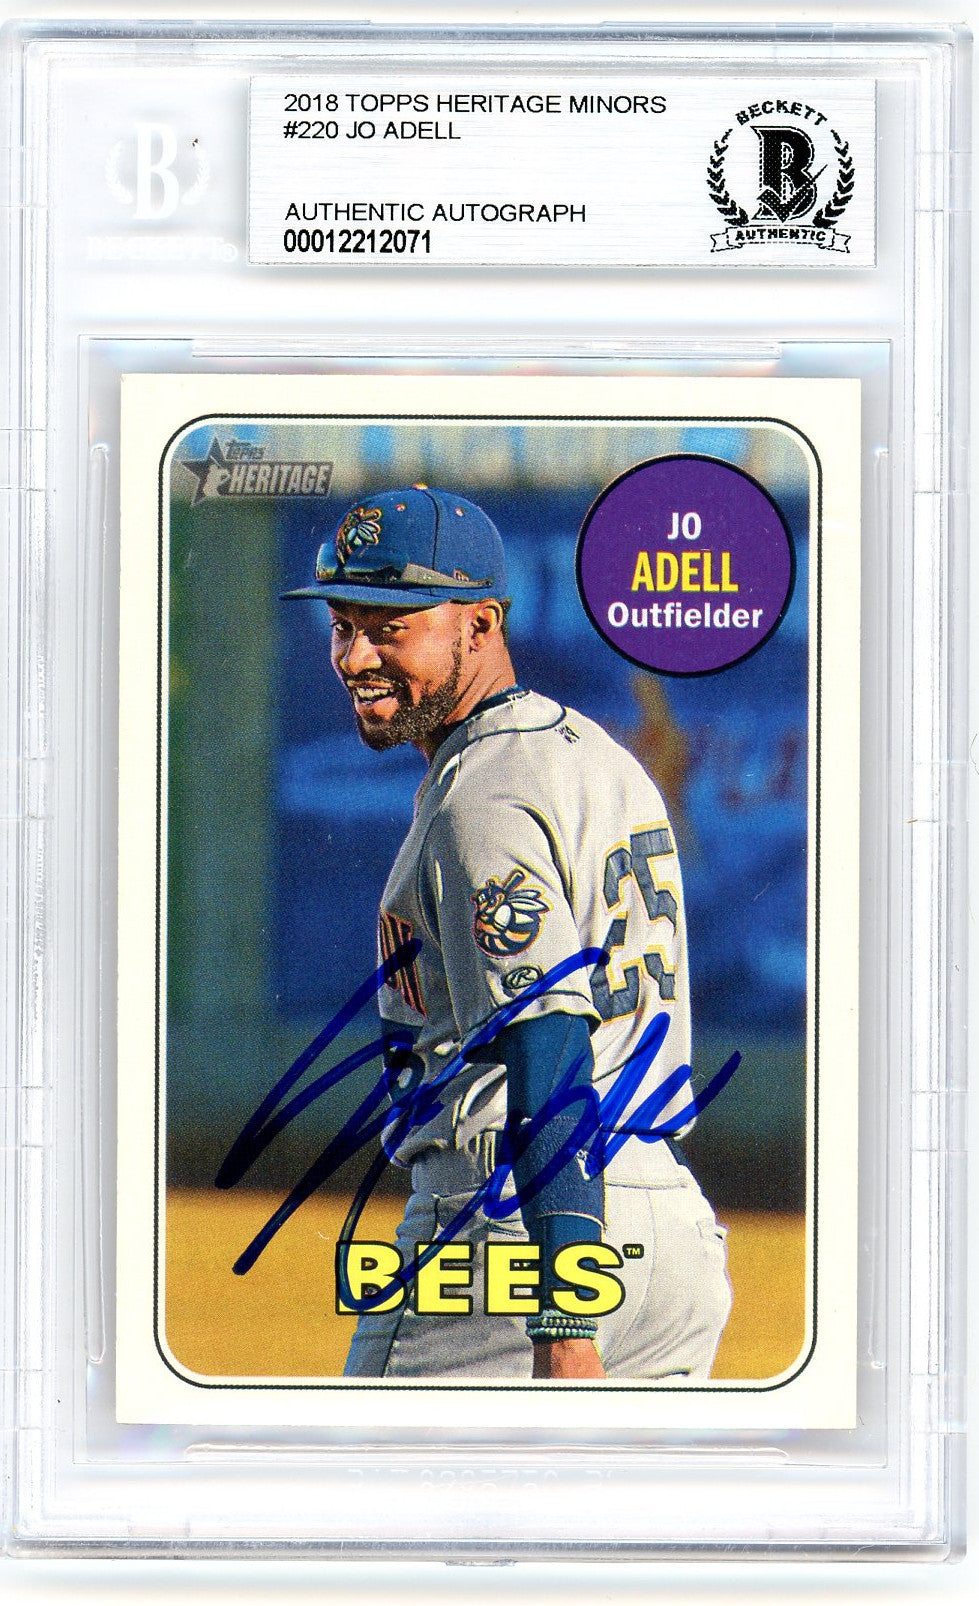 Jo Adell Los Angeles Angels Autographed 2018 Topps Heritage Minors Baseball Rookie Card RC #220 Beckett BAS Authenticated-Powers Sports Memorabilia